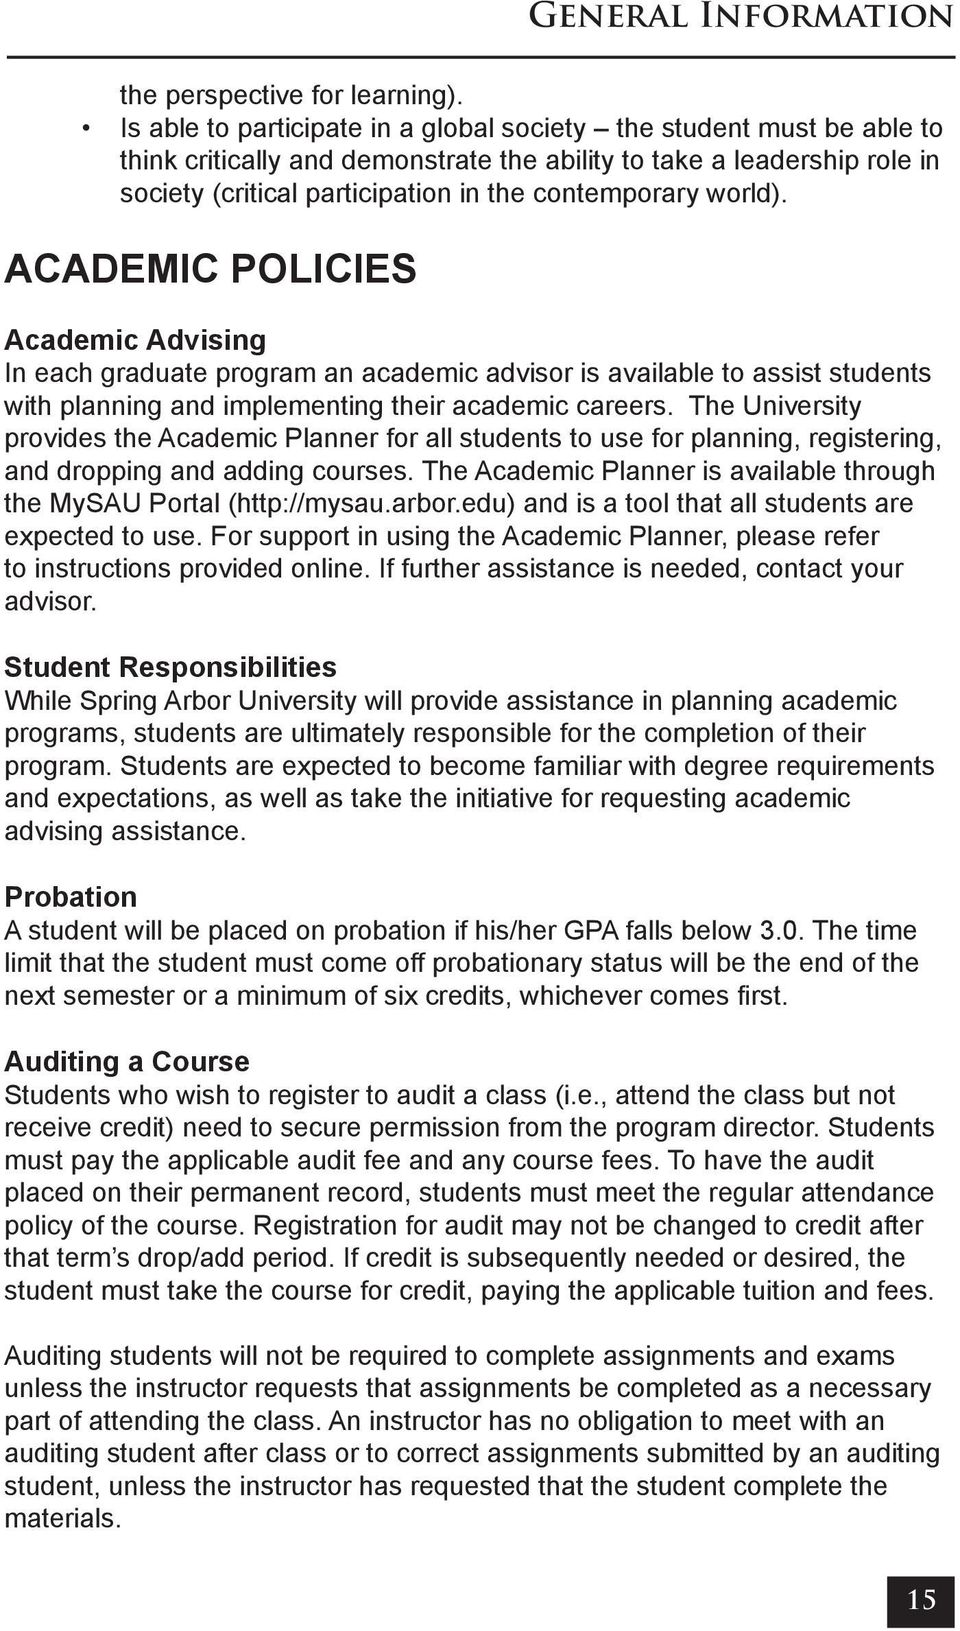 world). ACADEMIC POLICIES Academic Advising In each graduate program an academic advisor is available to assist students with planning and implementing their academic careers.